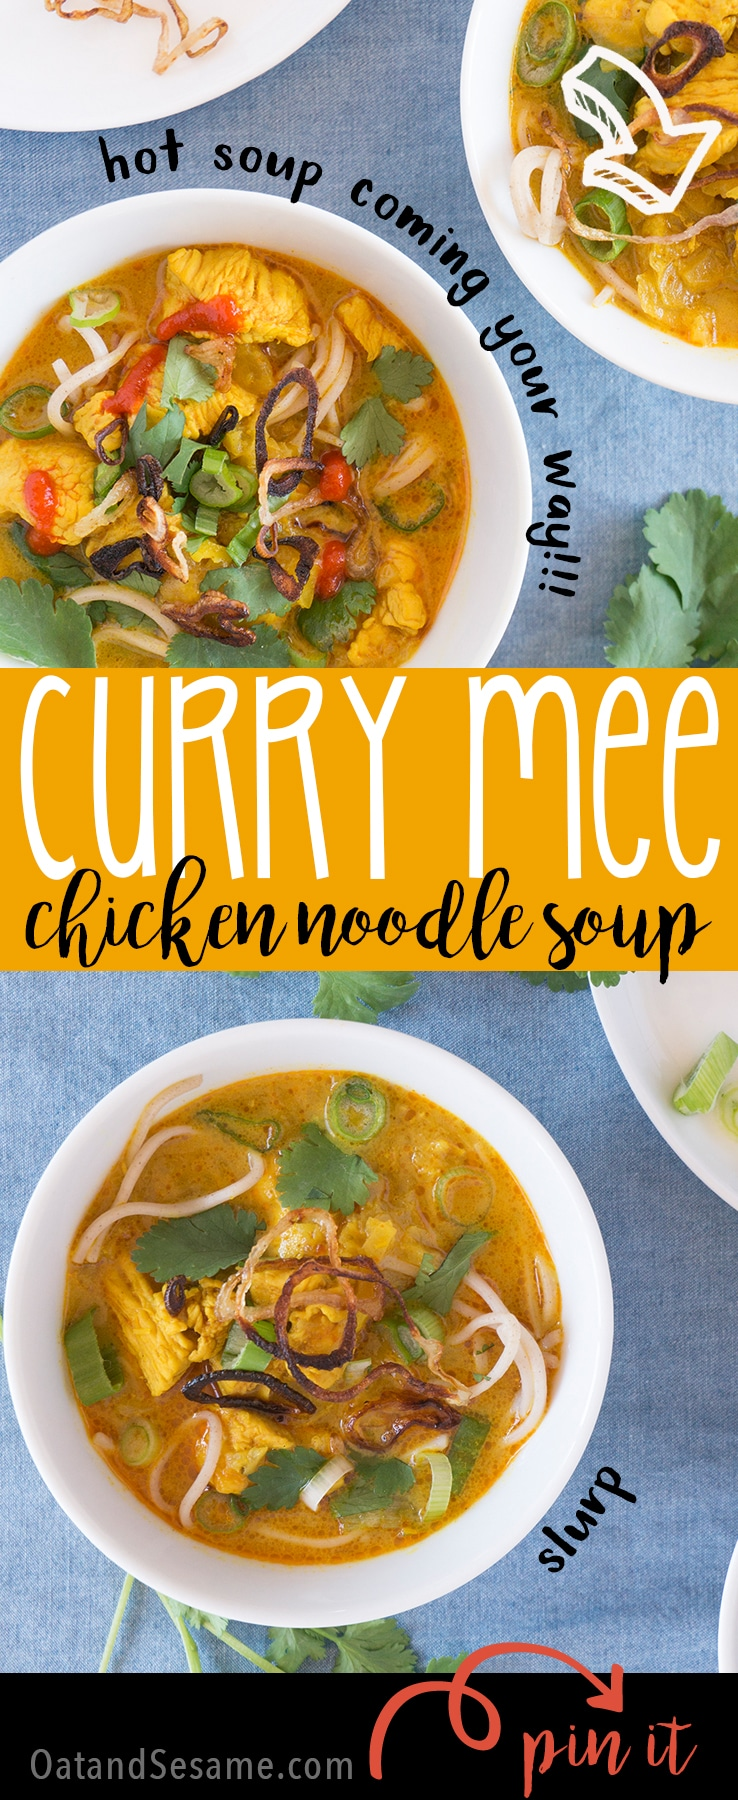 Curry Mee Noodle Soup - rich coconut broth with warm spices create a chicken noodle soup that's got amazing flavor! | ASIAN | CHICKEN | SOUP | Recipe at OatandSesame.com